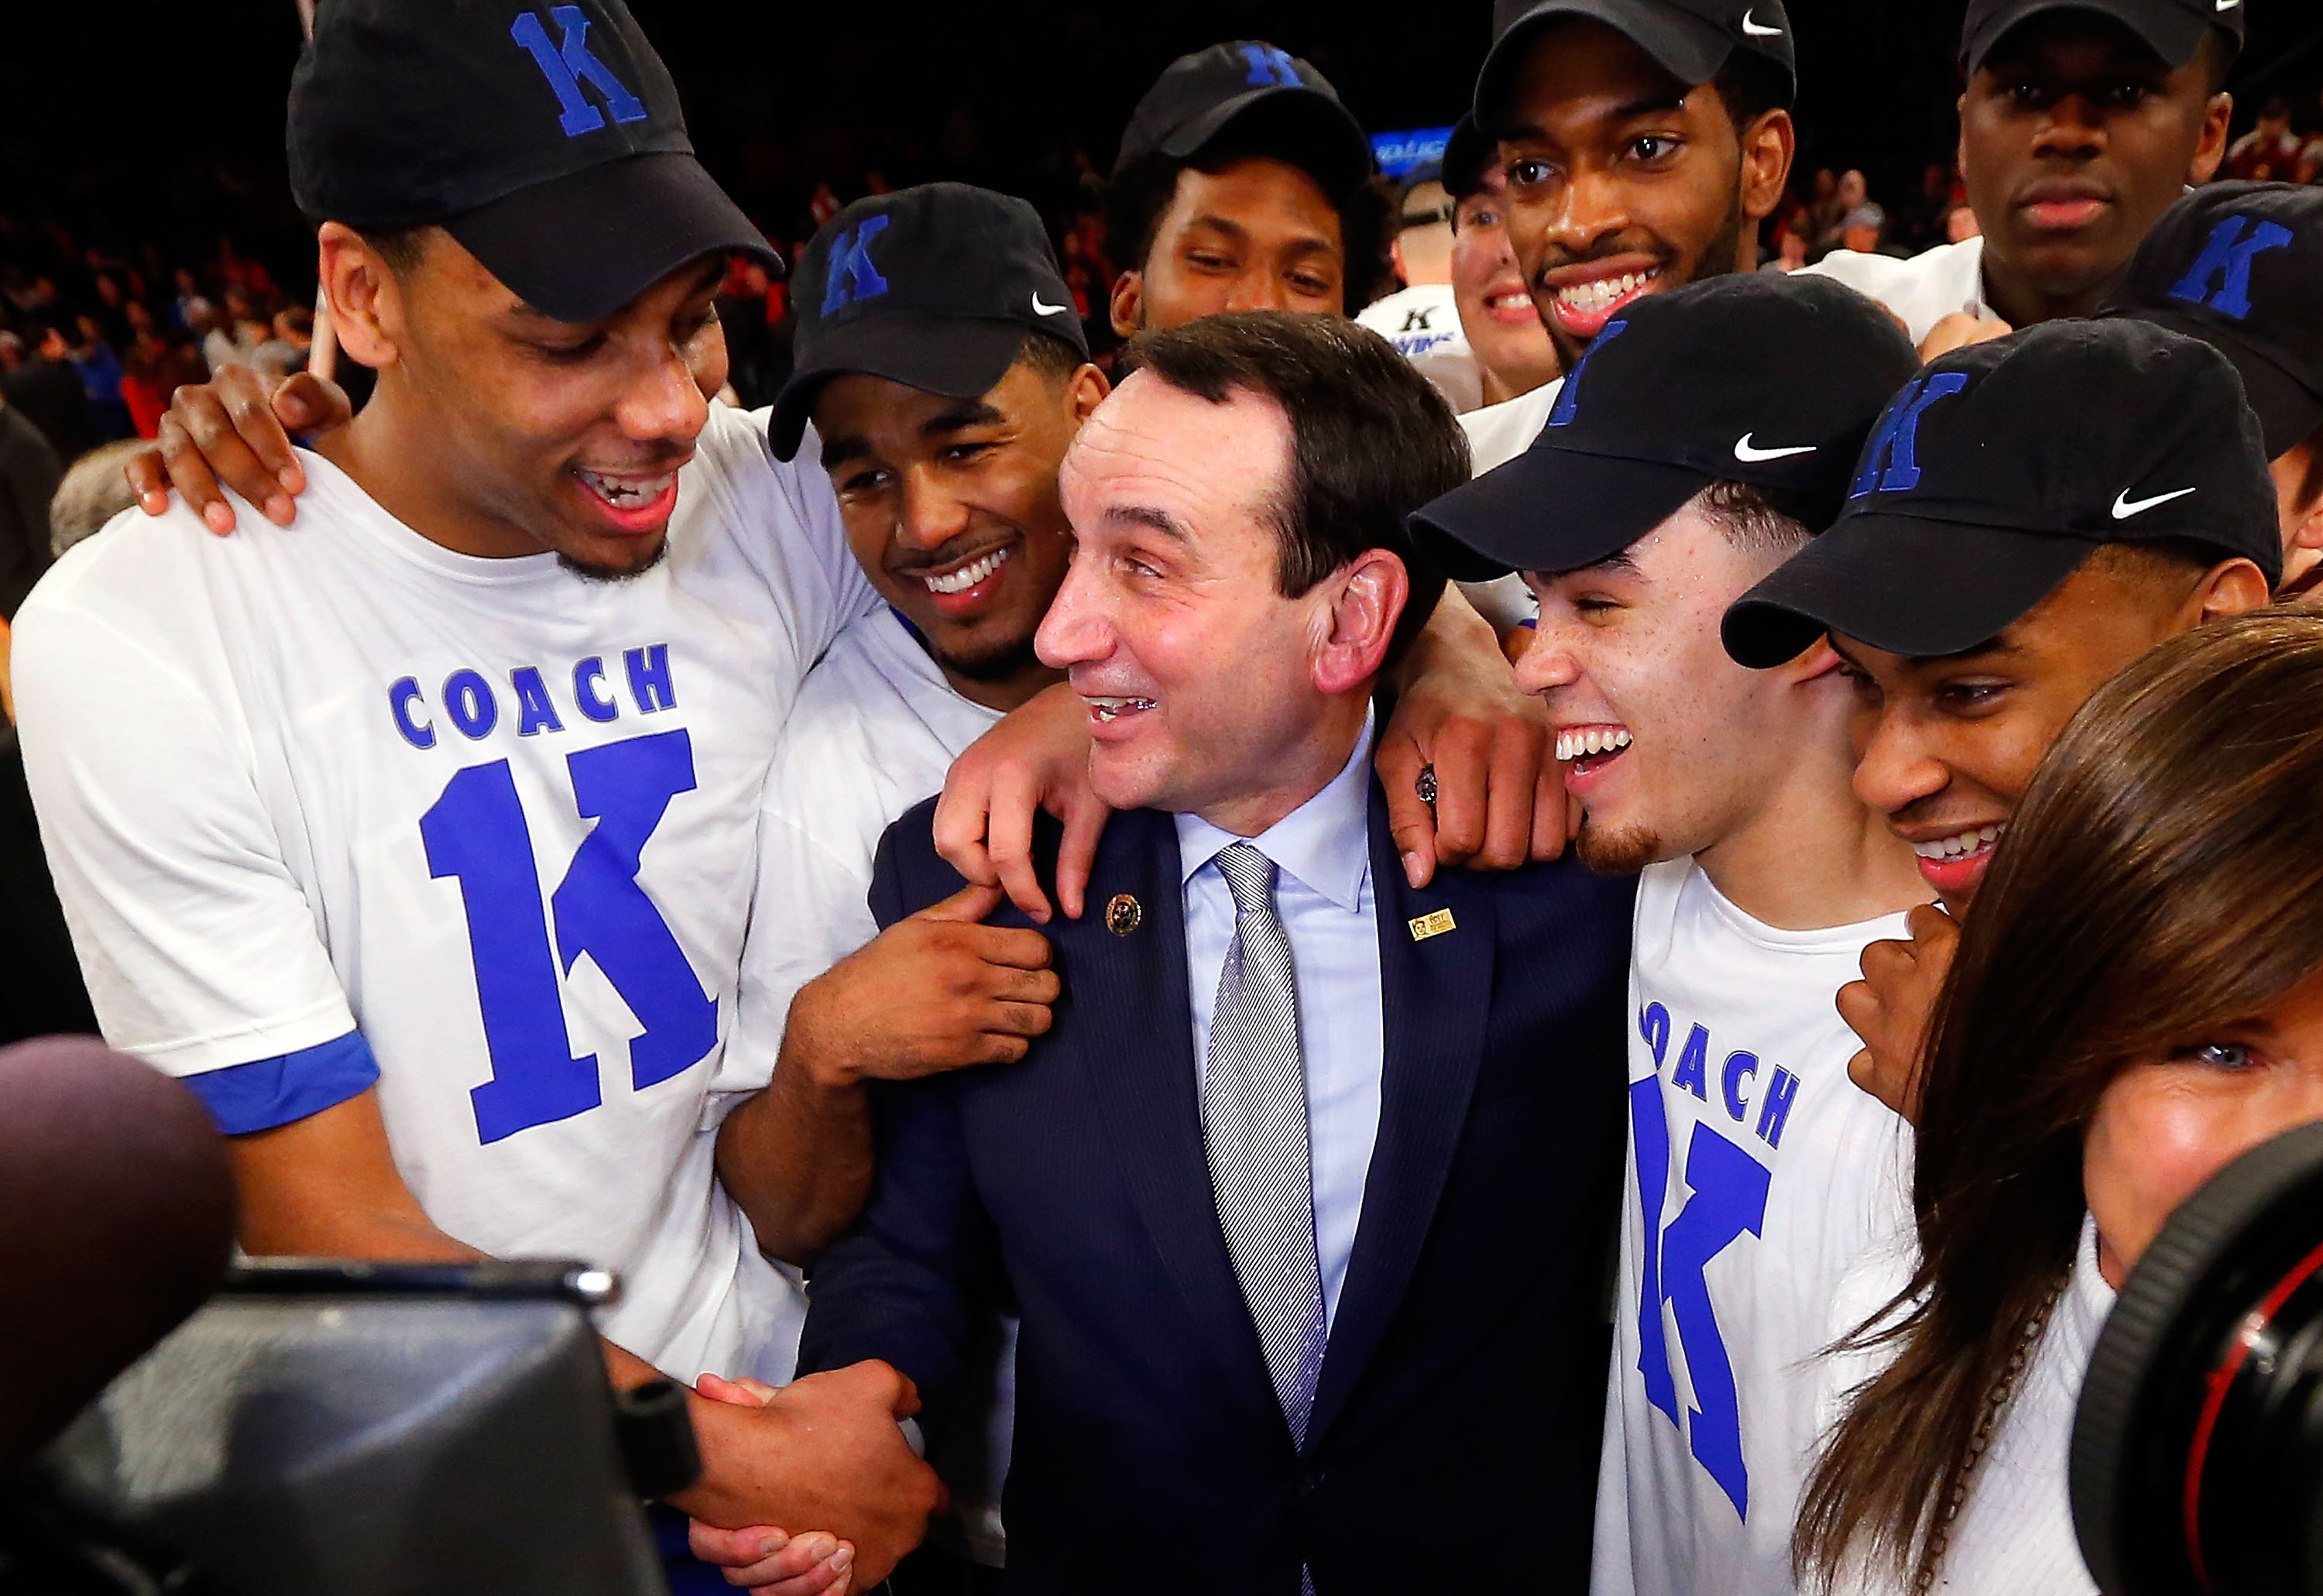 Head coach Mike Krzyzewski of the Duke Blue Devils celebrates with his players after defeating the St. John's Red Storm earning his 1,000th career victory on January 25 2015 at Madison Square Garden in New York City. Duke defeated St John's 77-68.